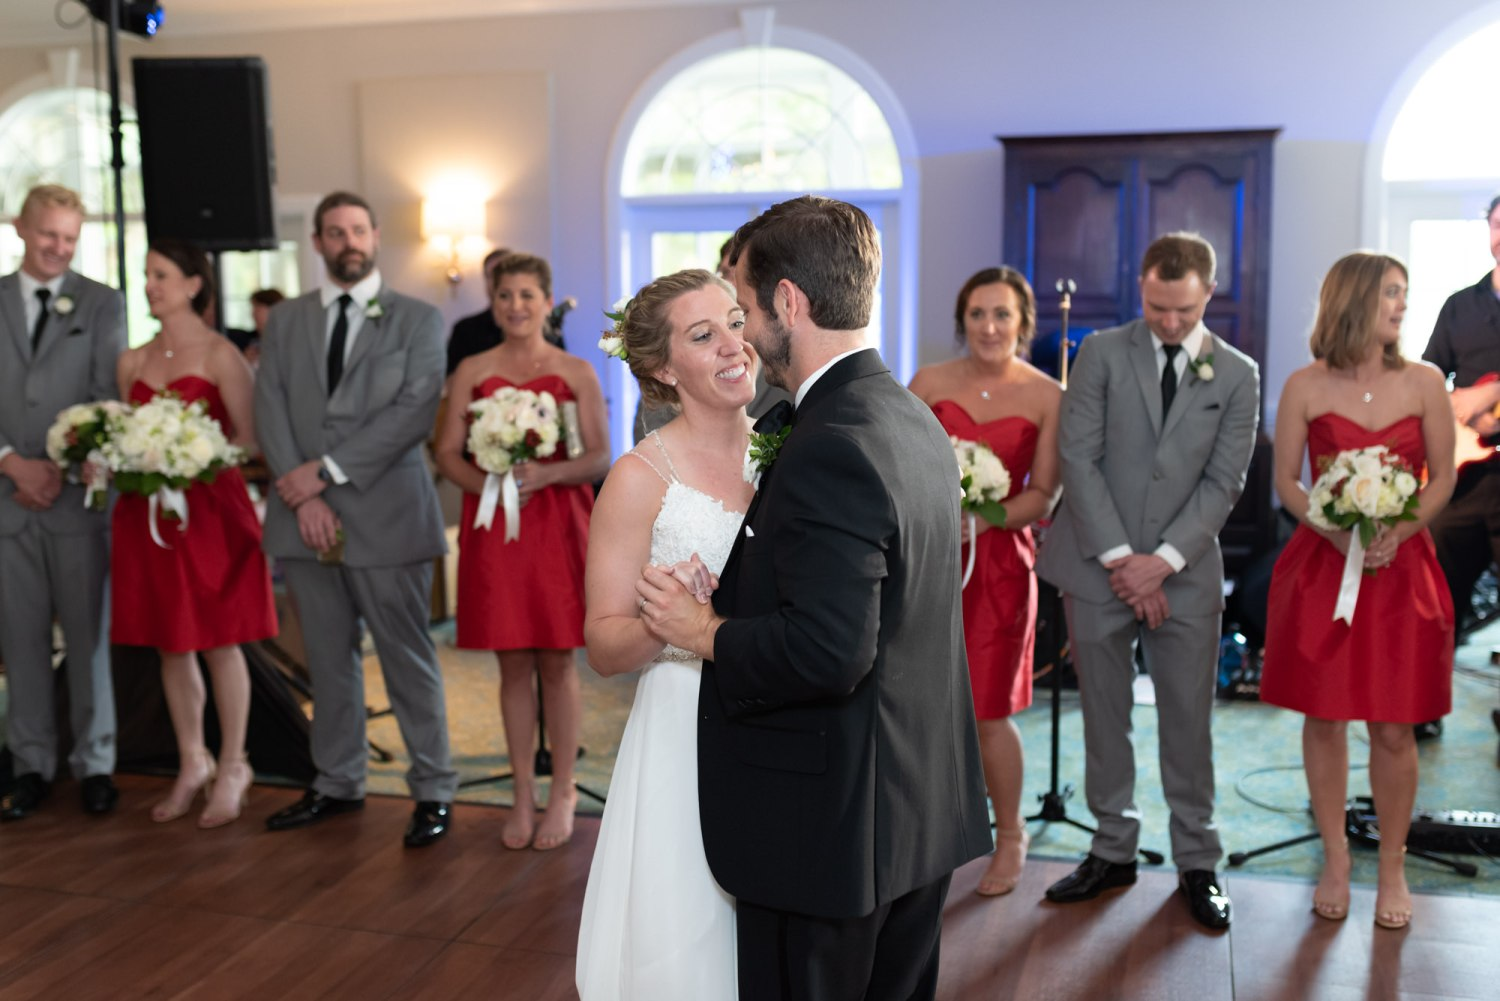 First dance with bride and groom - Wachesaw Plantation